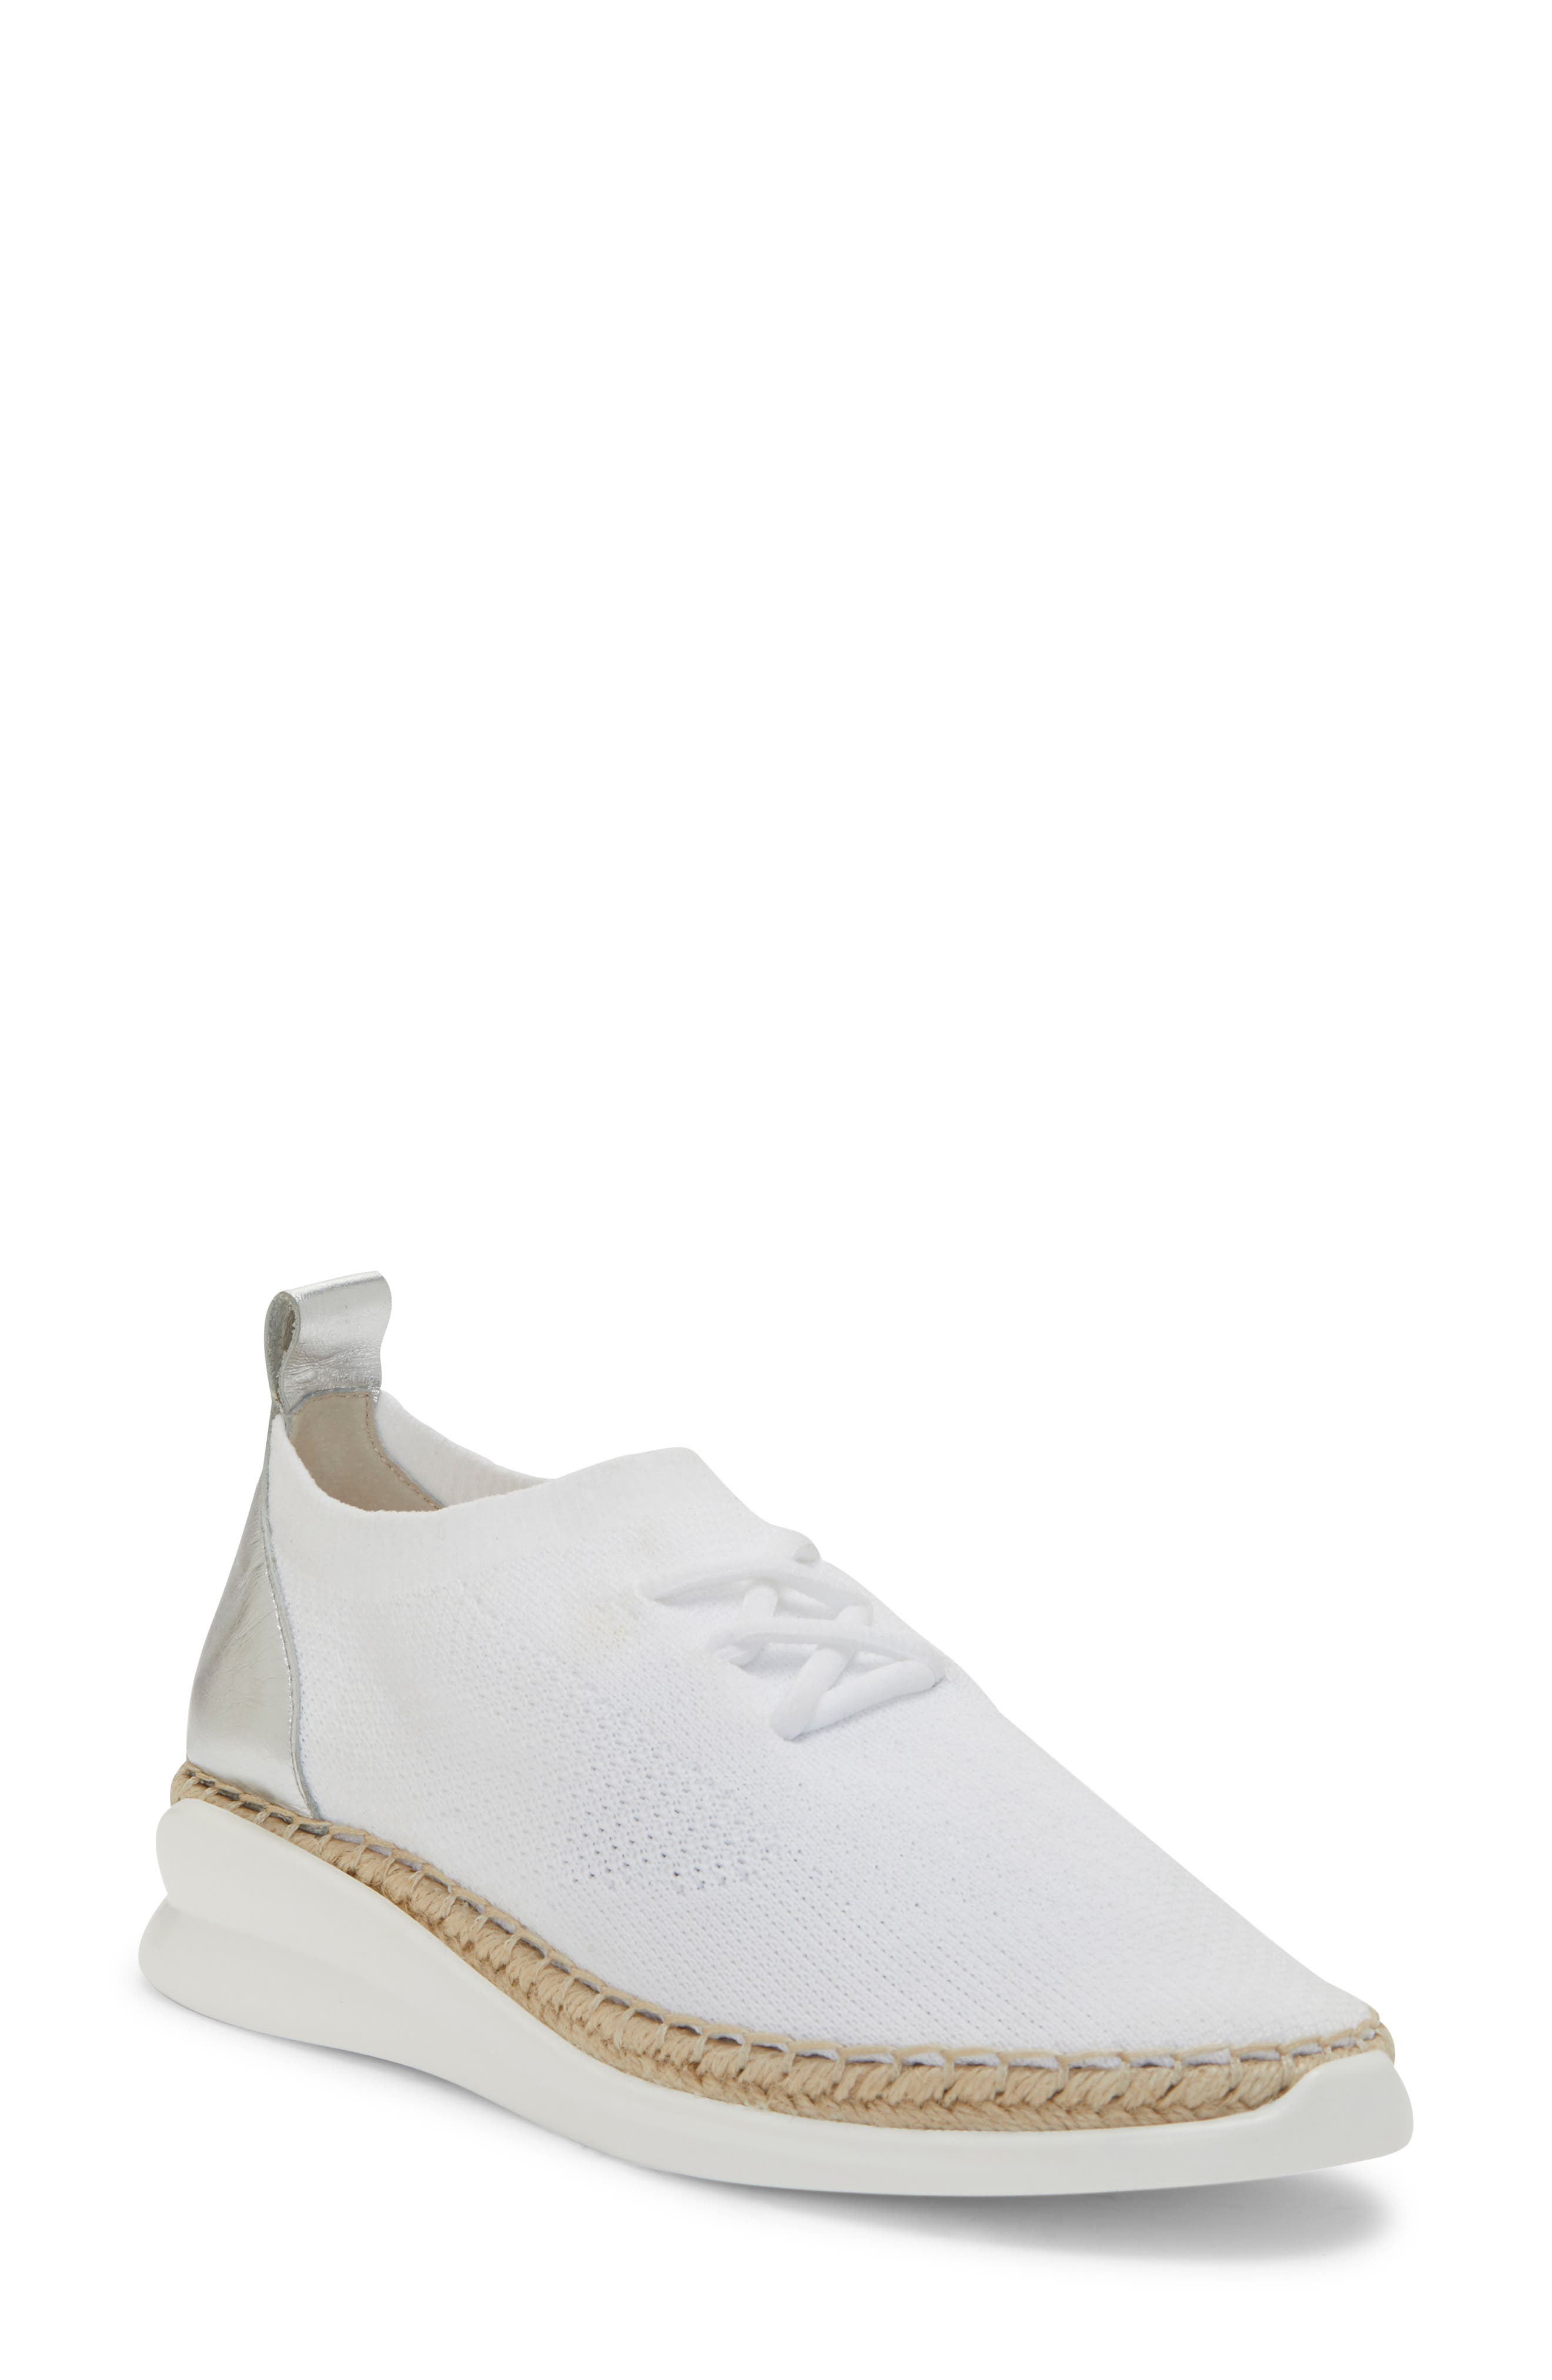 Vince Camuto Affina Sneaker- White